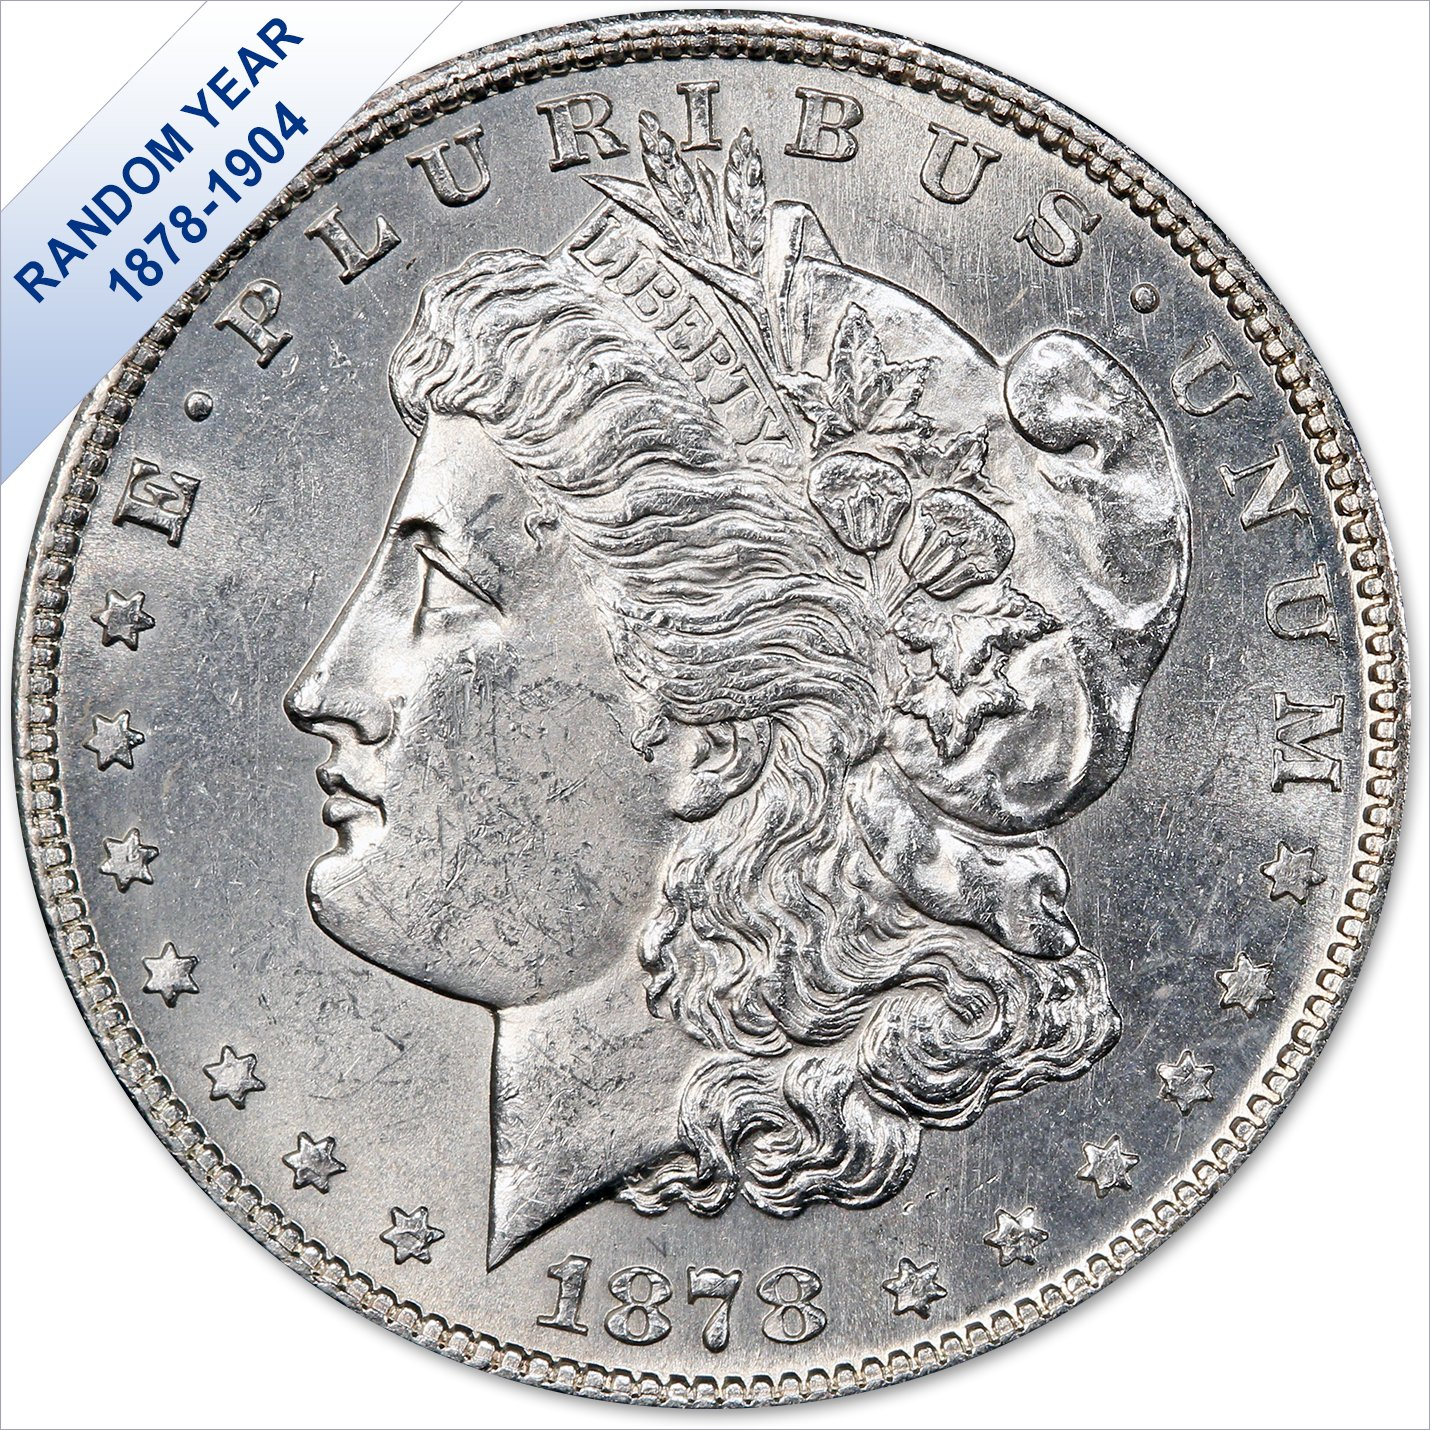 (1878-1904) Morgan Silver Dollar (BU) $1 Brilliant Uncirculated 91eu7HZII1L